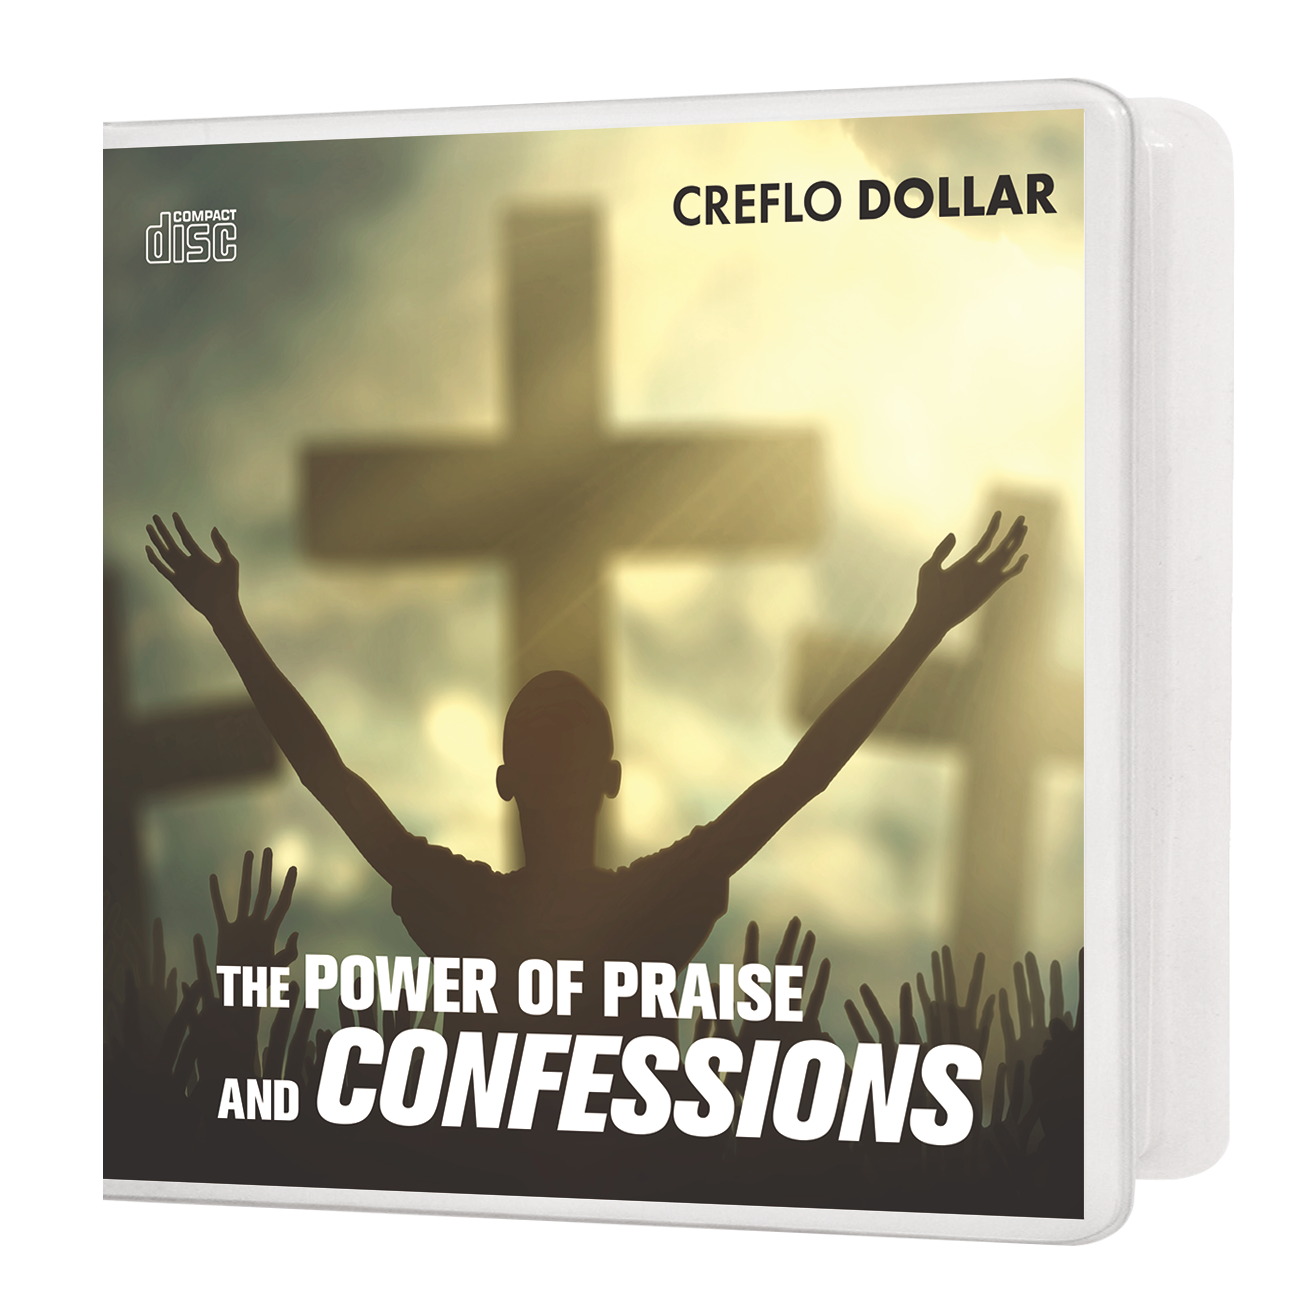 The Power of Praise and Confessions - 3 Message Series